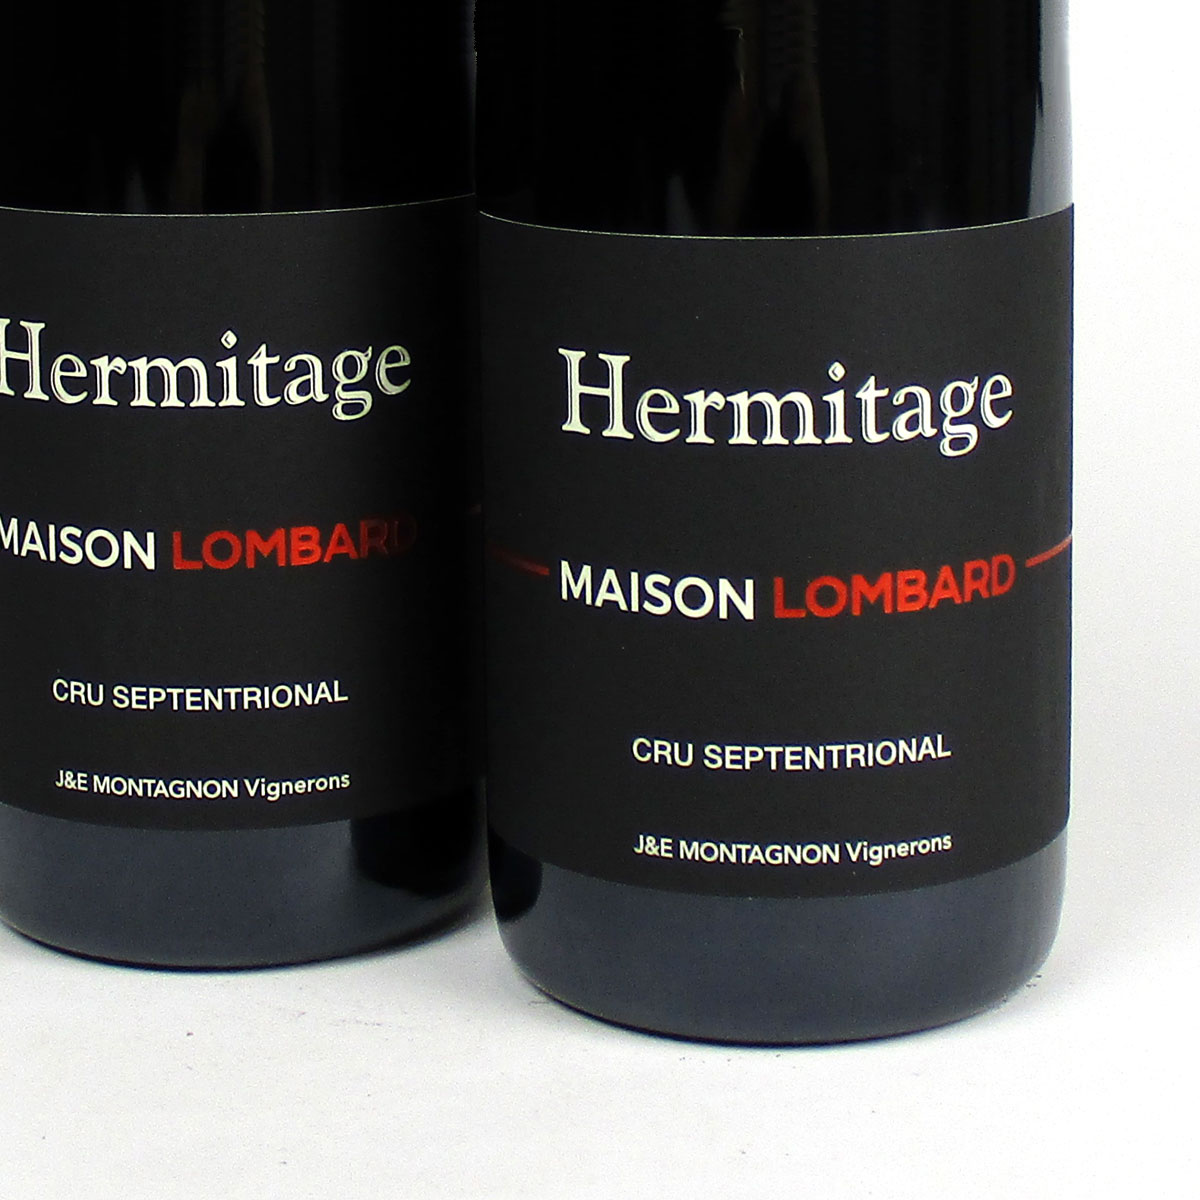 Hermitage: Maison Lombard 2015